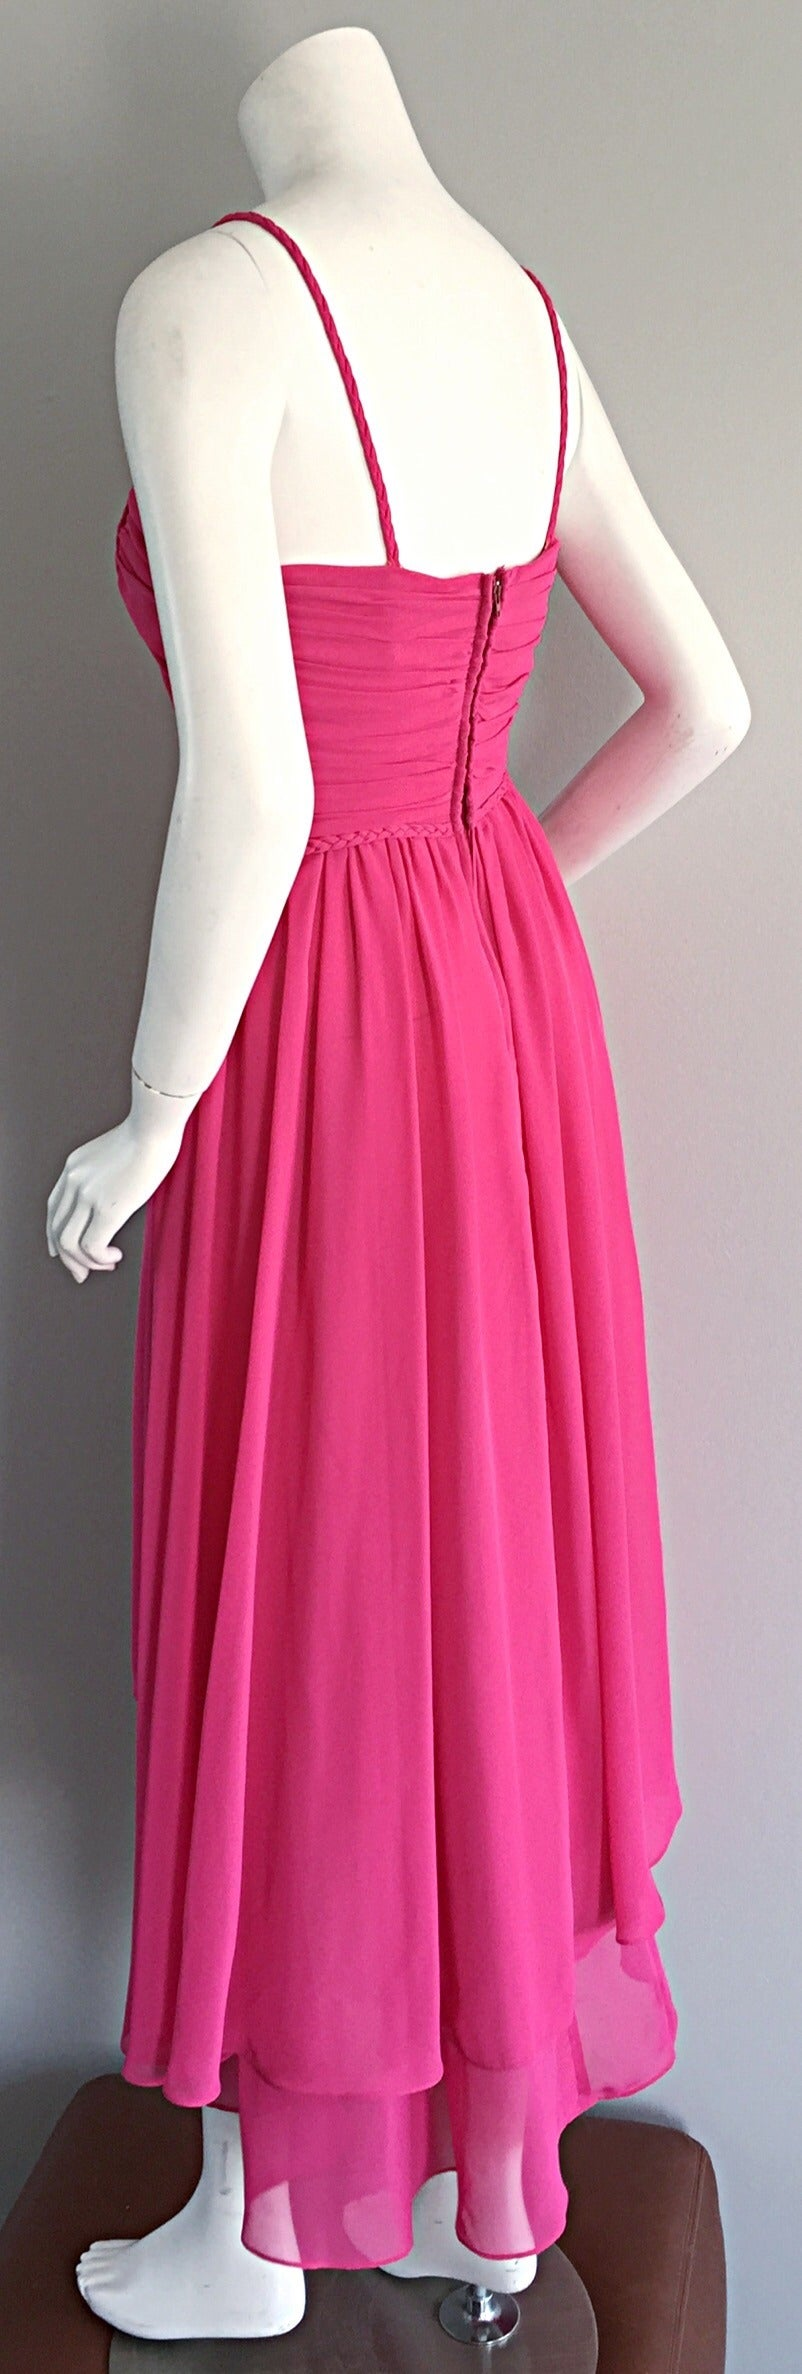 1970s Joy Stevens Hot Pink Vintage Flowy Grecian Disco Dress w/ Braided Details 7